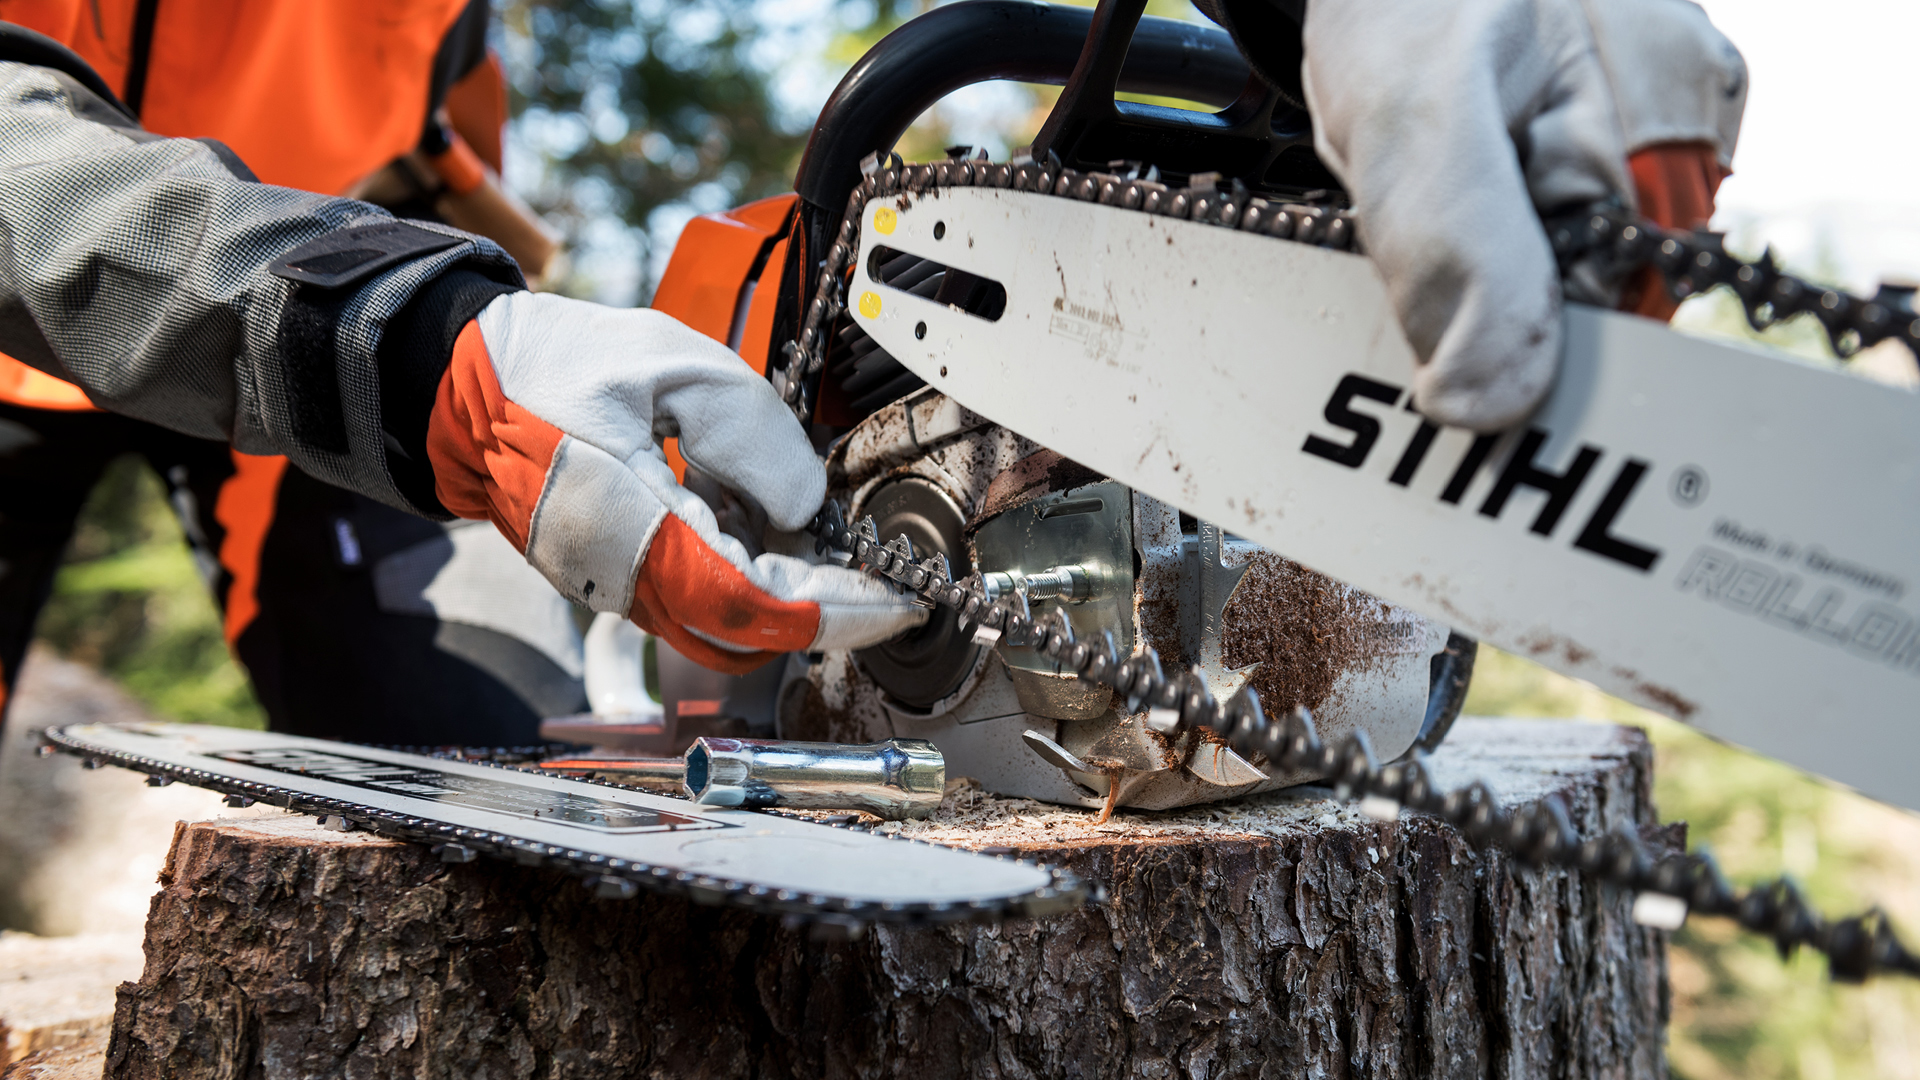 Fixing a chain on STIHL chainsaw